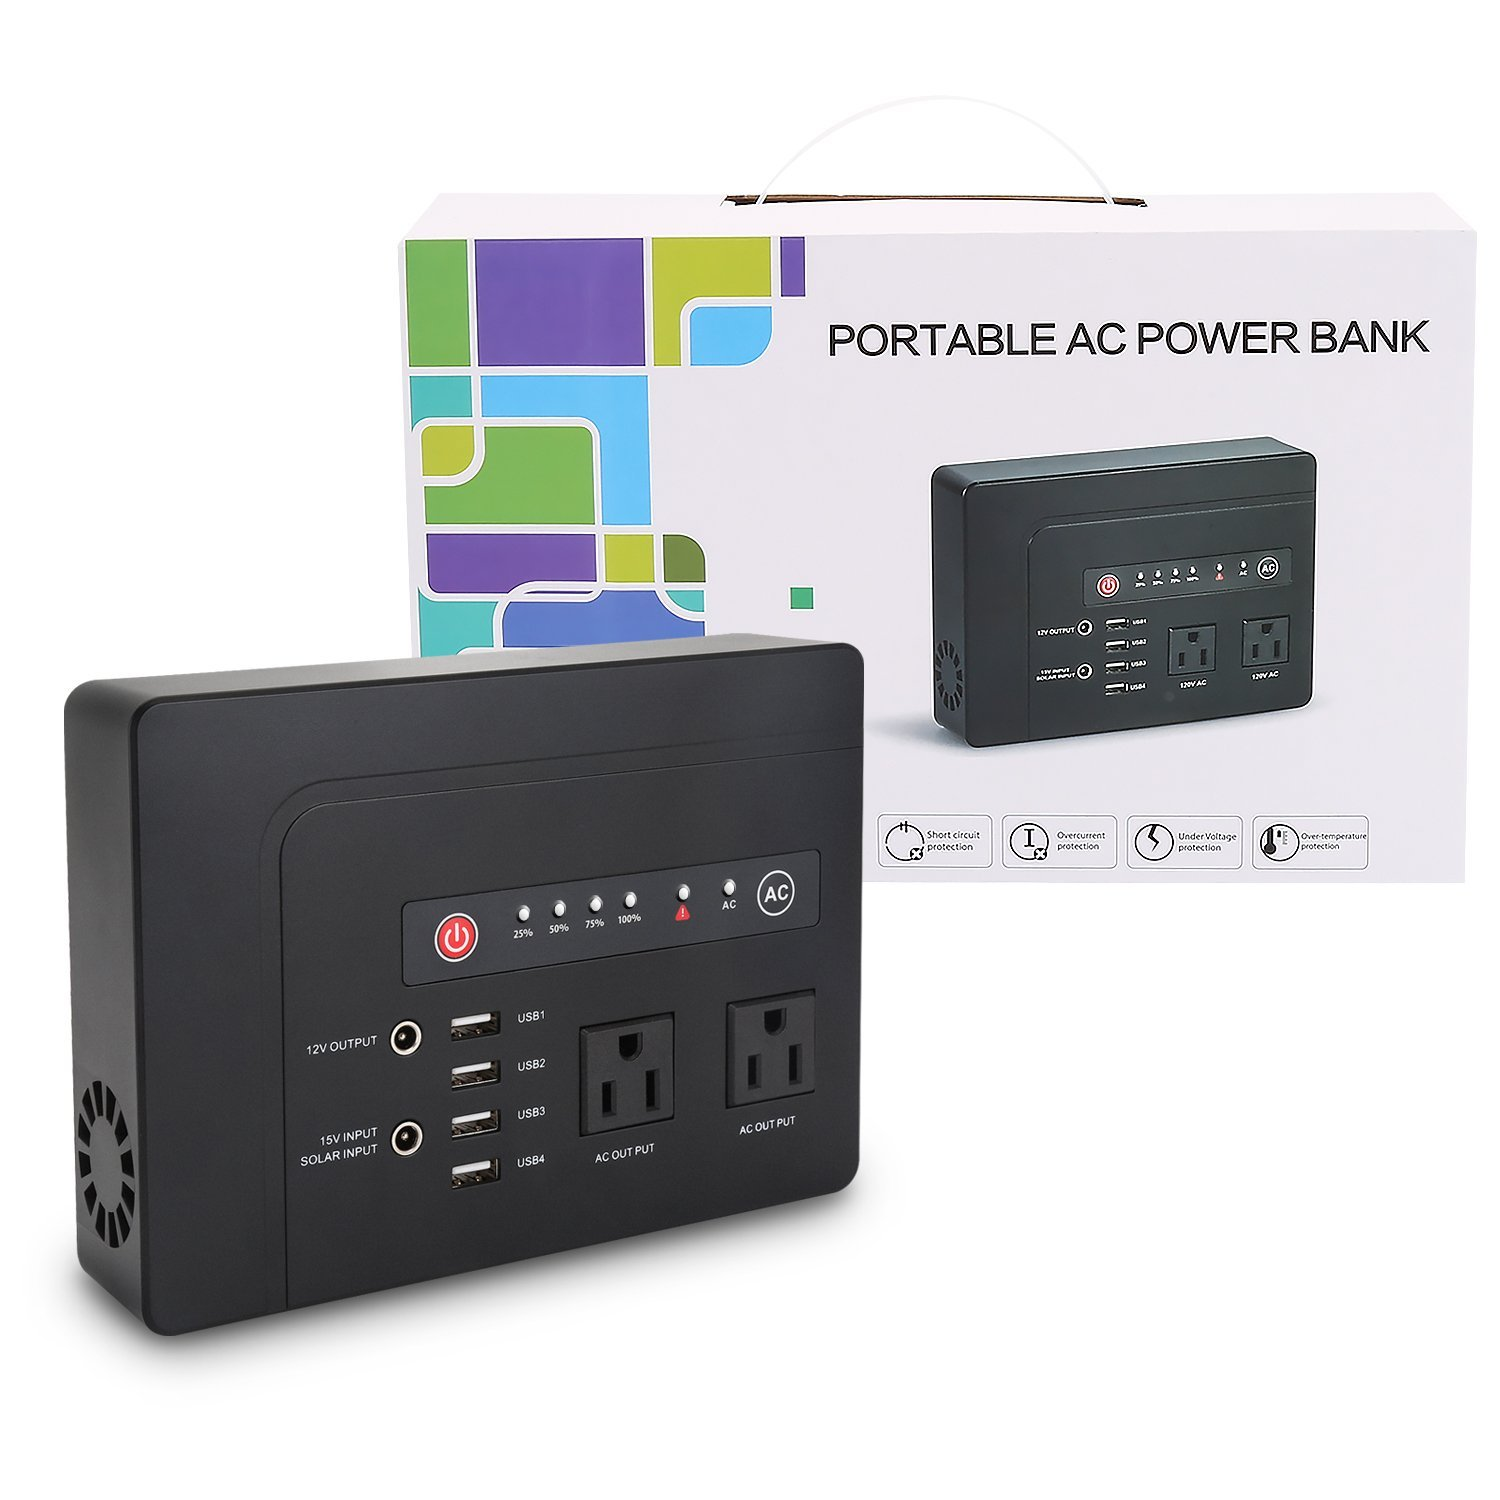 All in one solar inverter for home appliances UPS car charger battery backup inverter off grid inverter charger